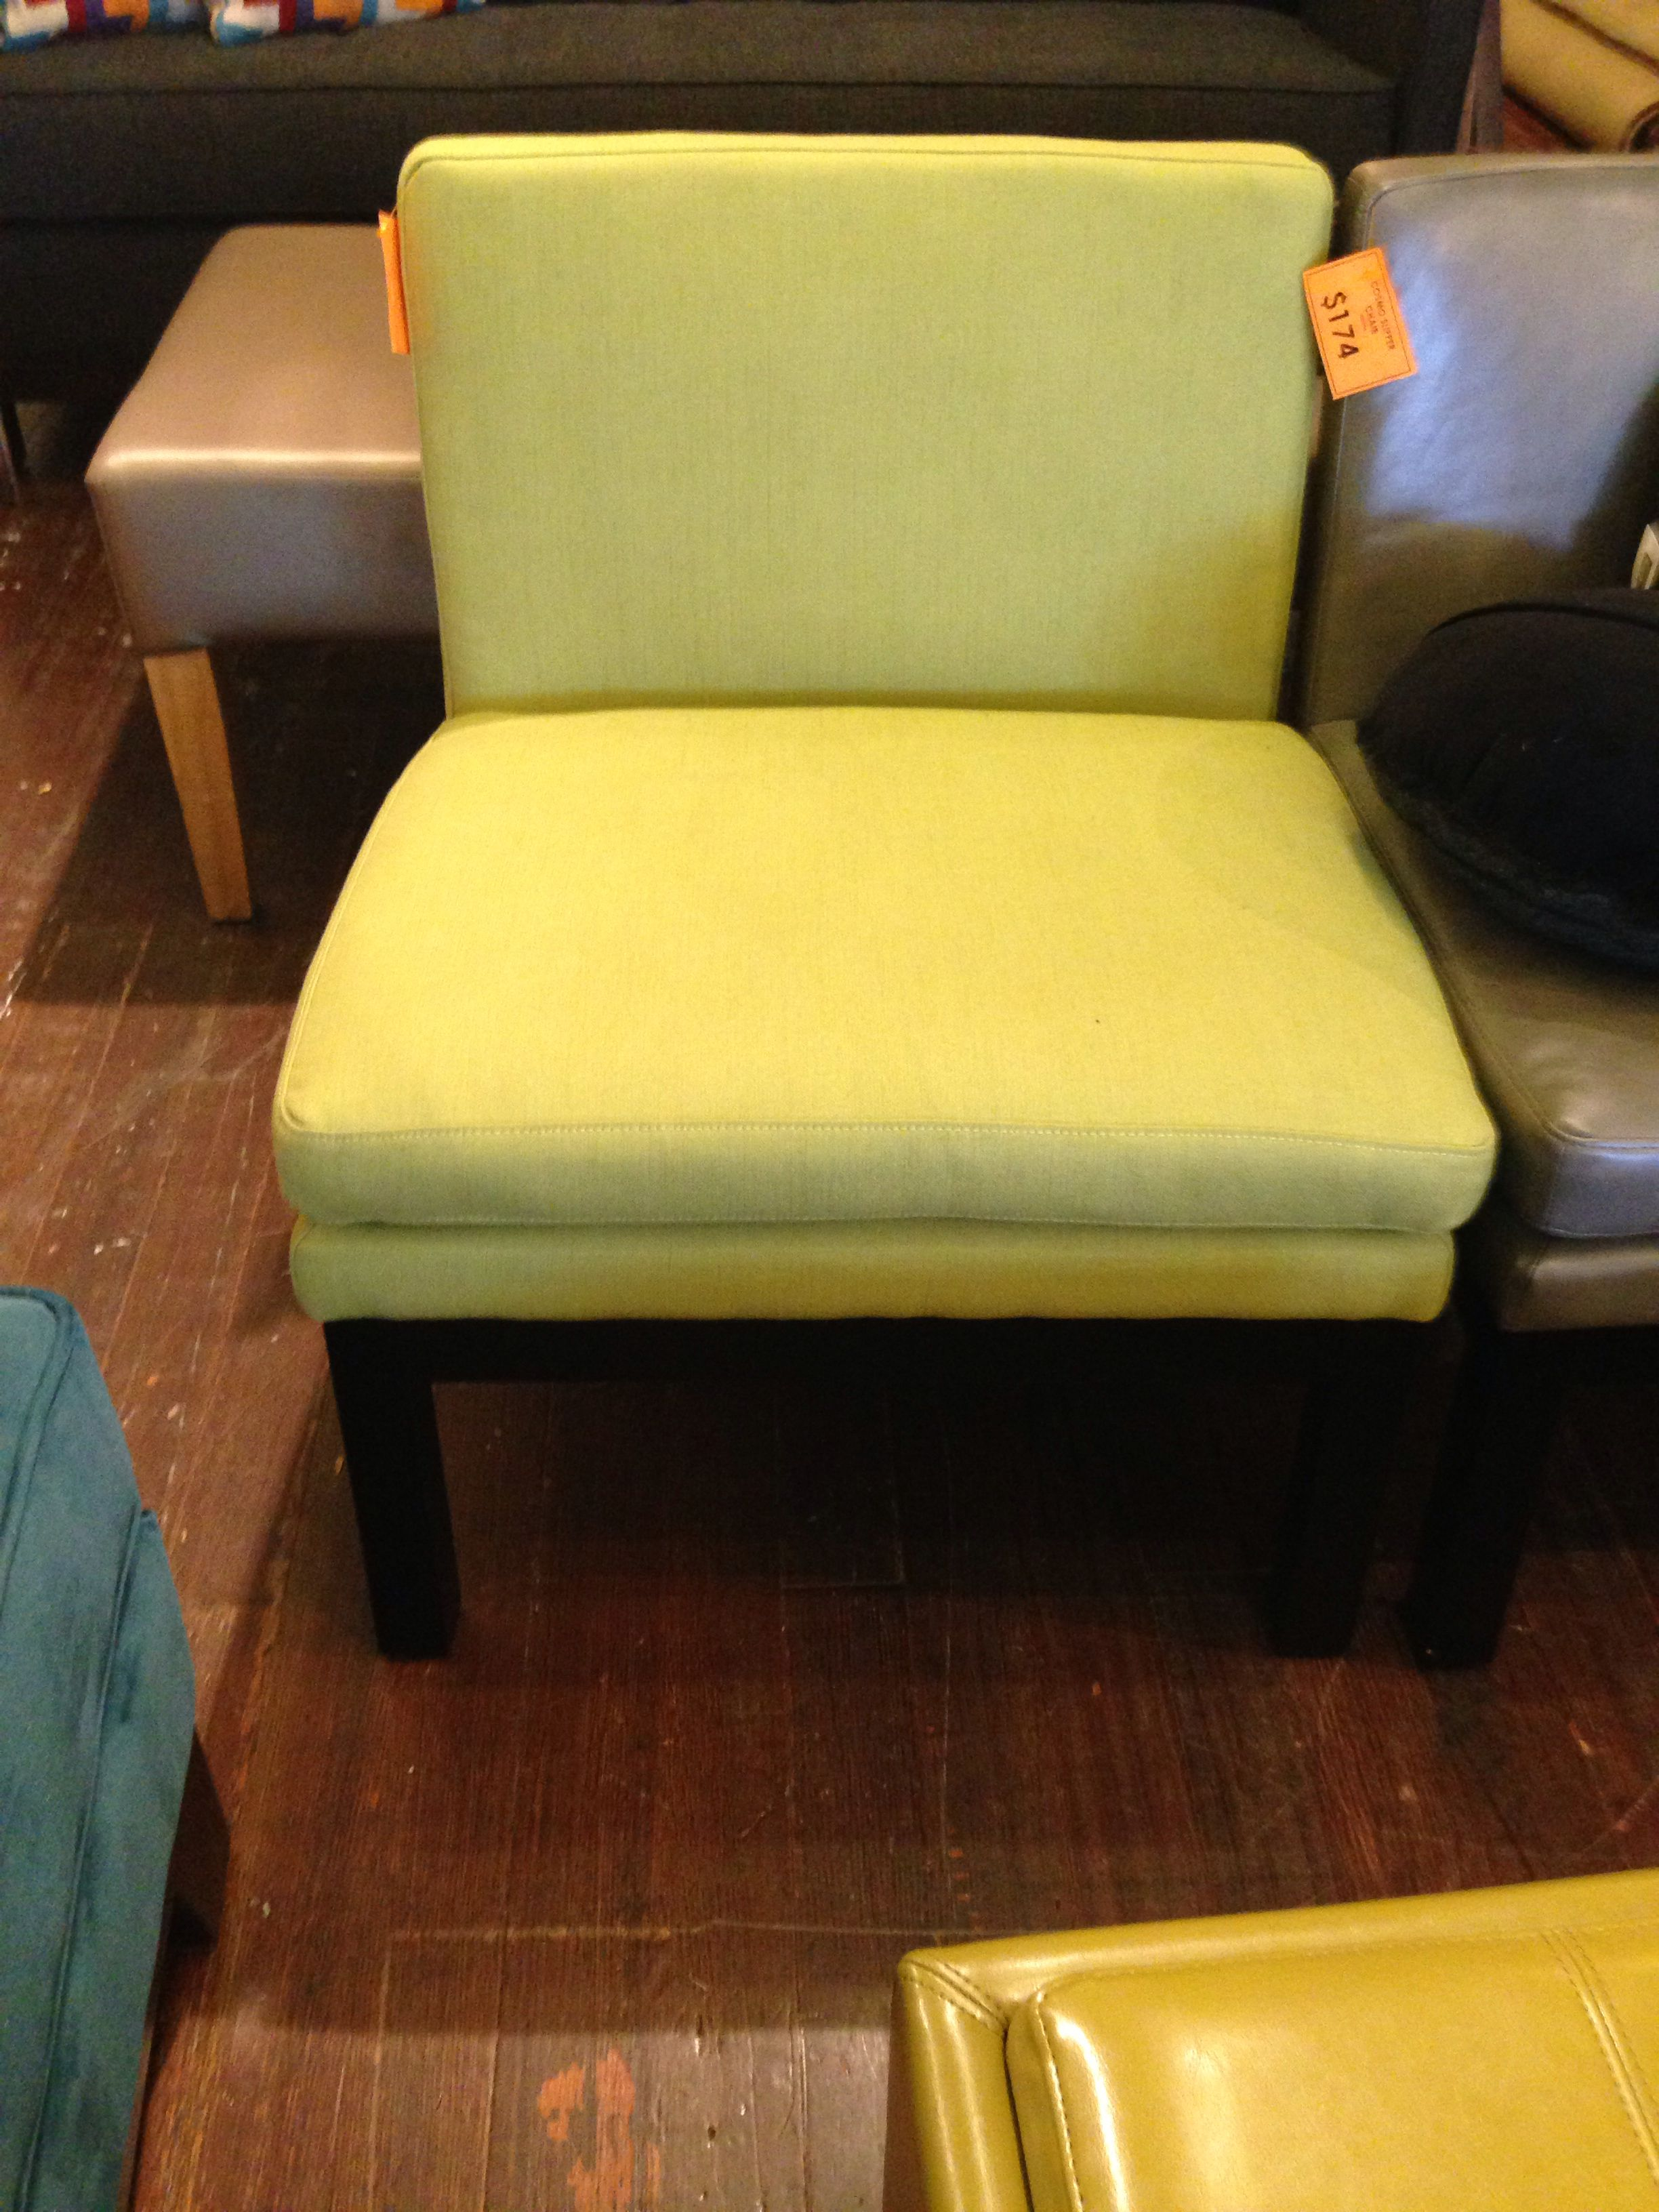 Cosmo slipper chair $174 (therapy)